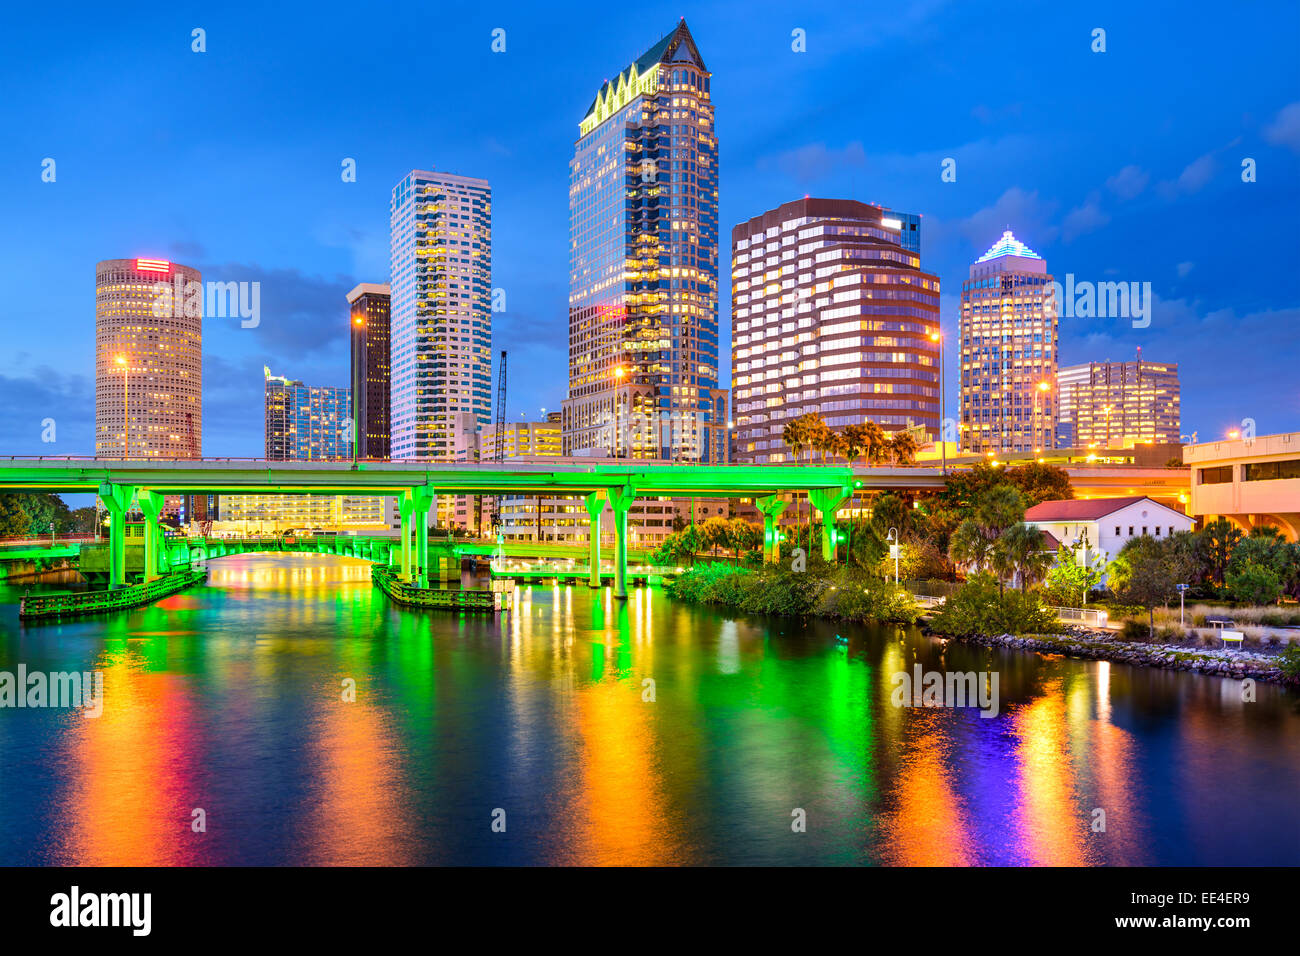 Tampa, Florida, USA downtown city skyline on the Hillsborough River. - Stock Image